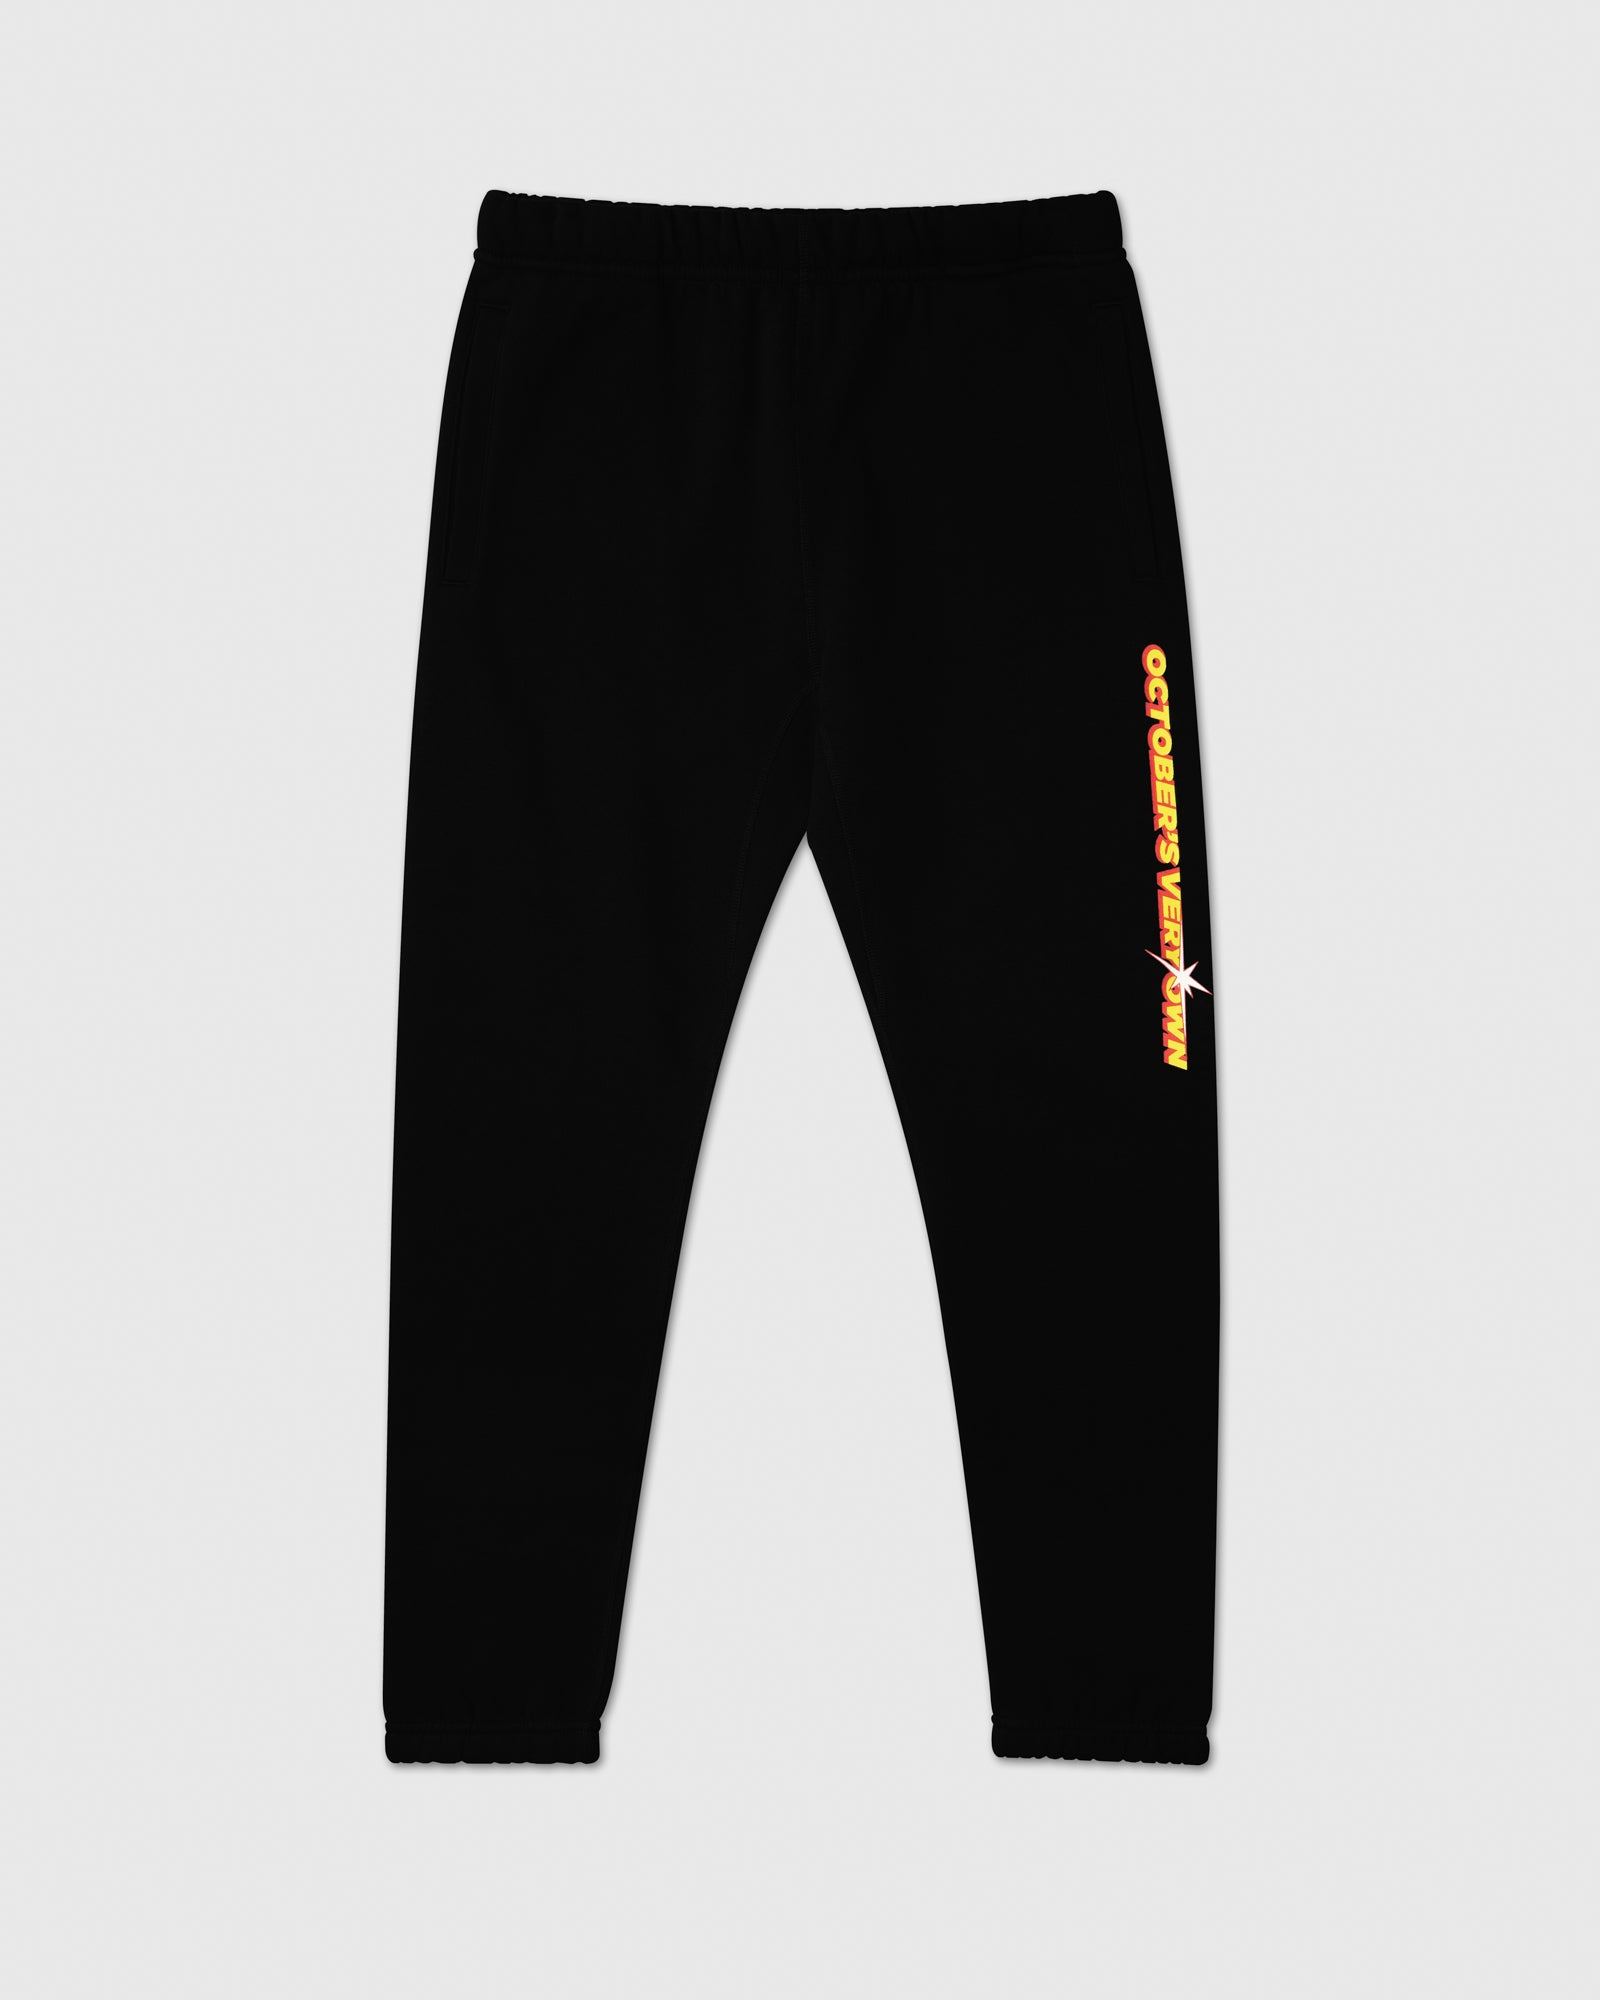 SHINING WORDMARK SWEATPANT - BLACK IMAGE #1